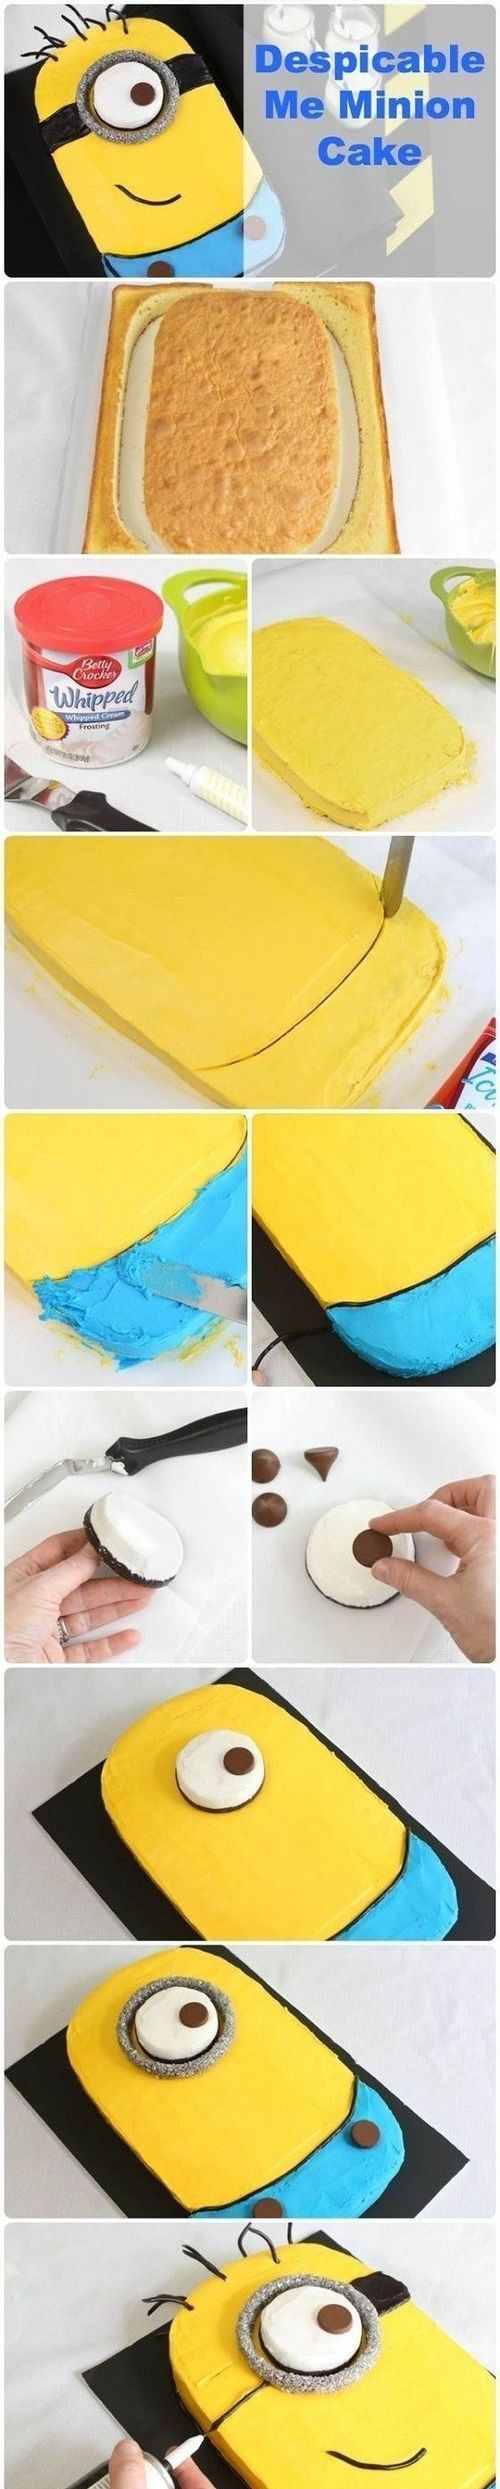 DIY Minion Cake Tutorial Pictures, Photos, and Images for Facebook, Tumblr, Pinterest, and Twitter